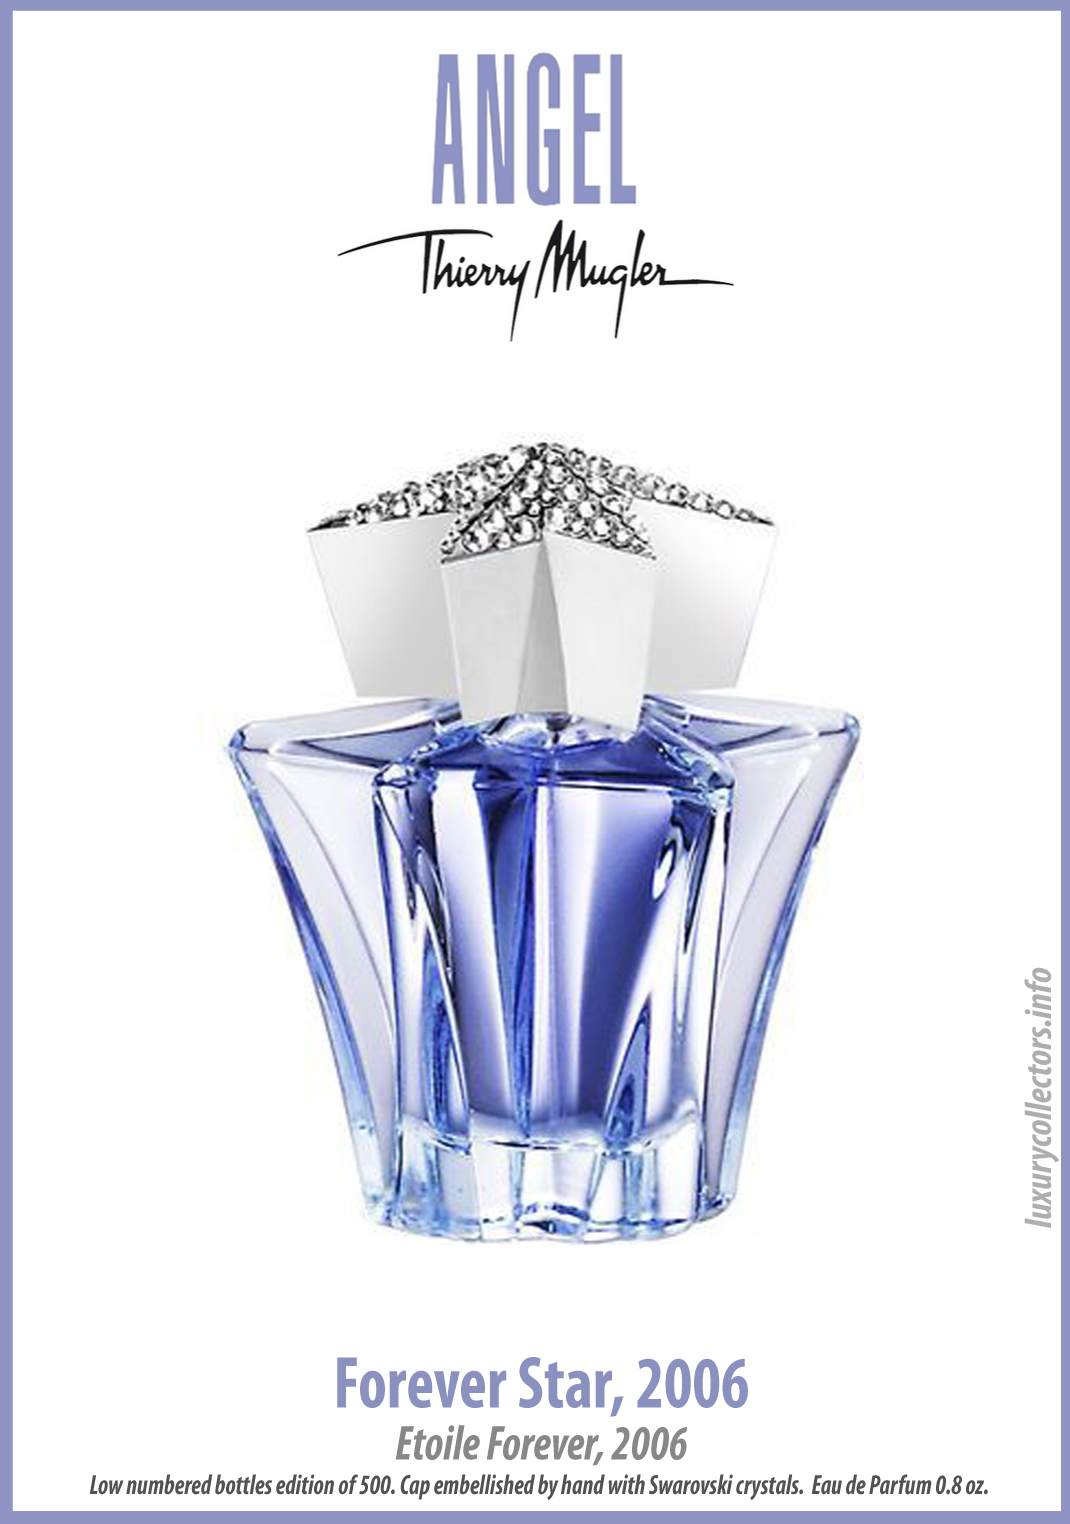 Thierry Mugler Angel Perfume Collector's Limited Edition Bottle 2006 Forever Star Swarovski Crystals Stopper